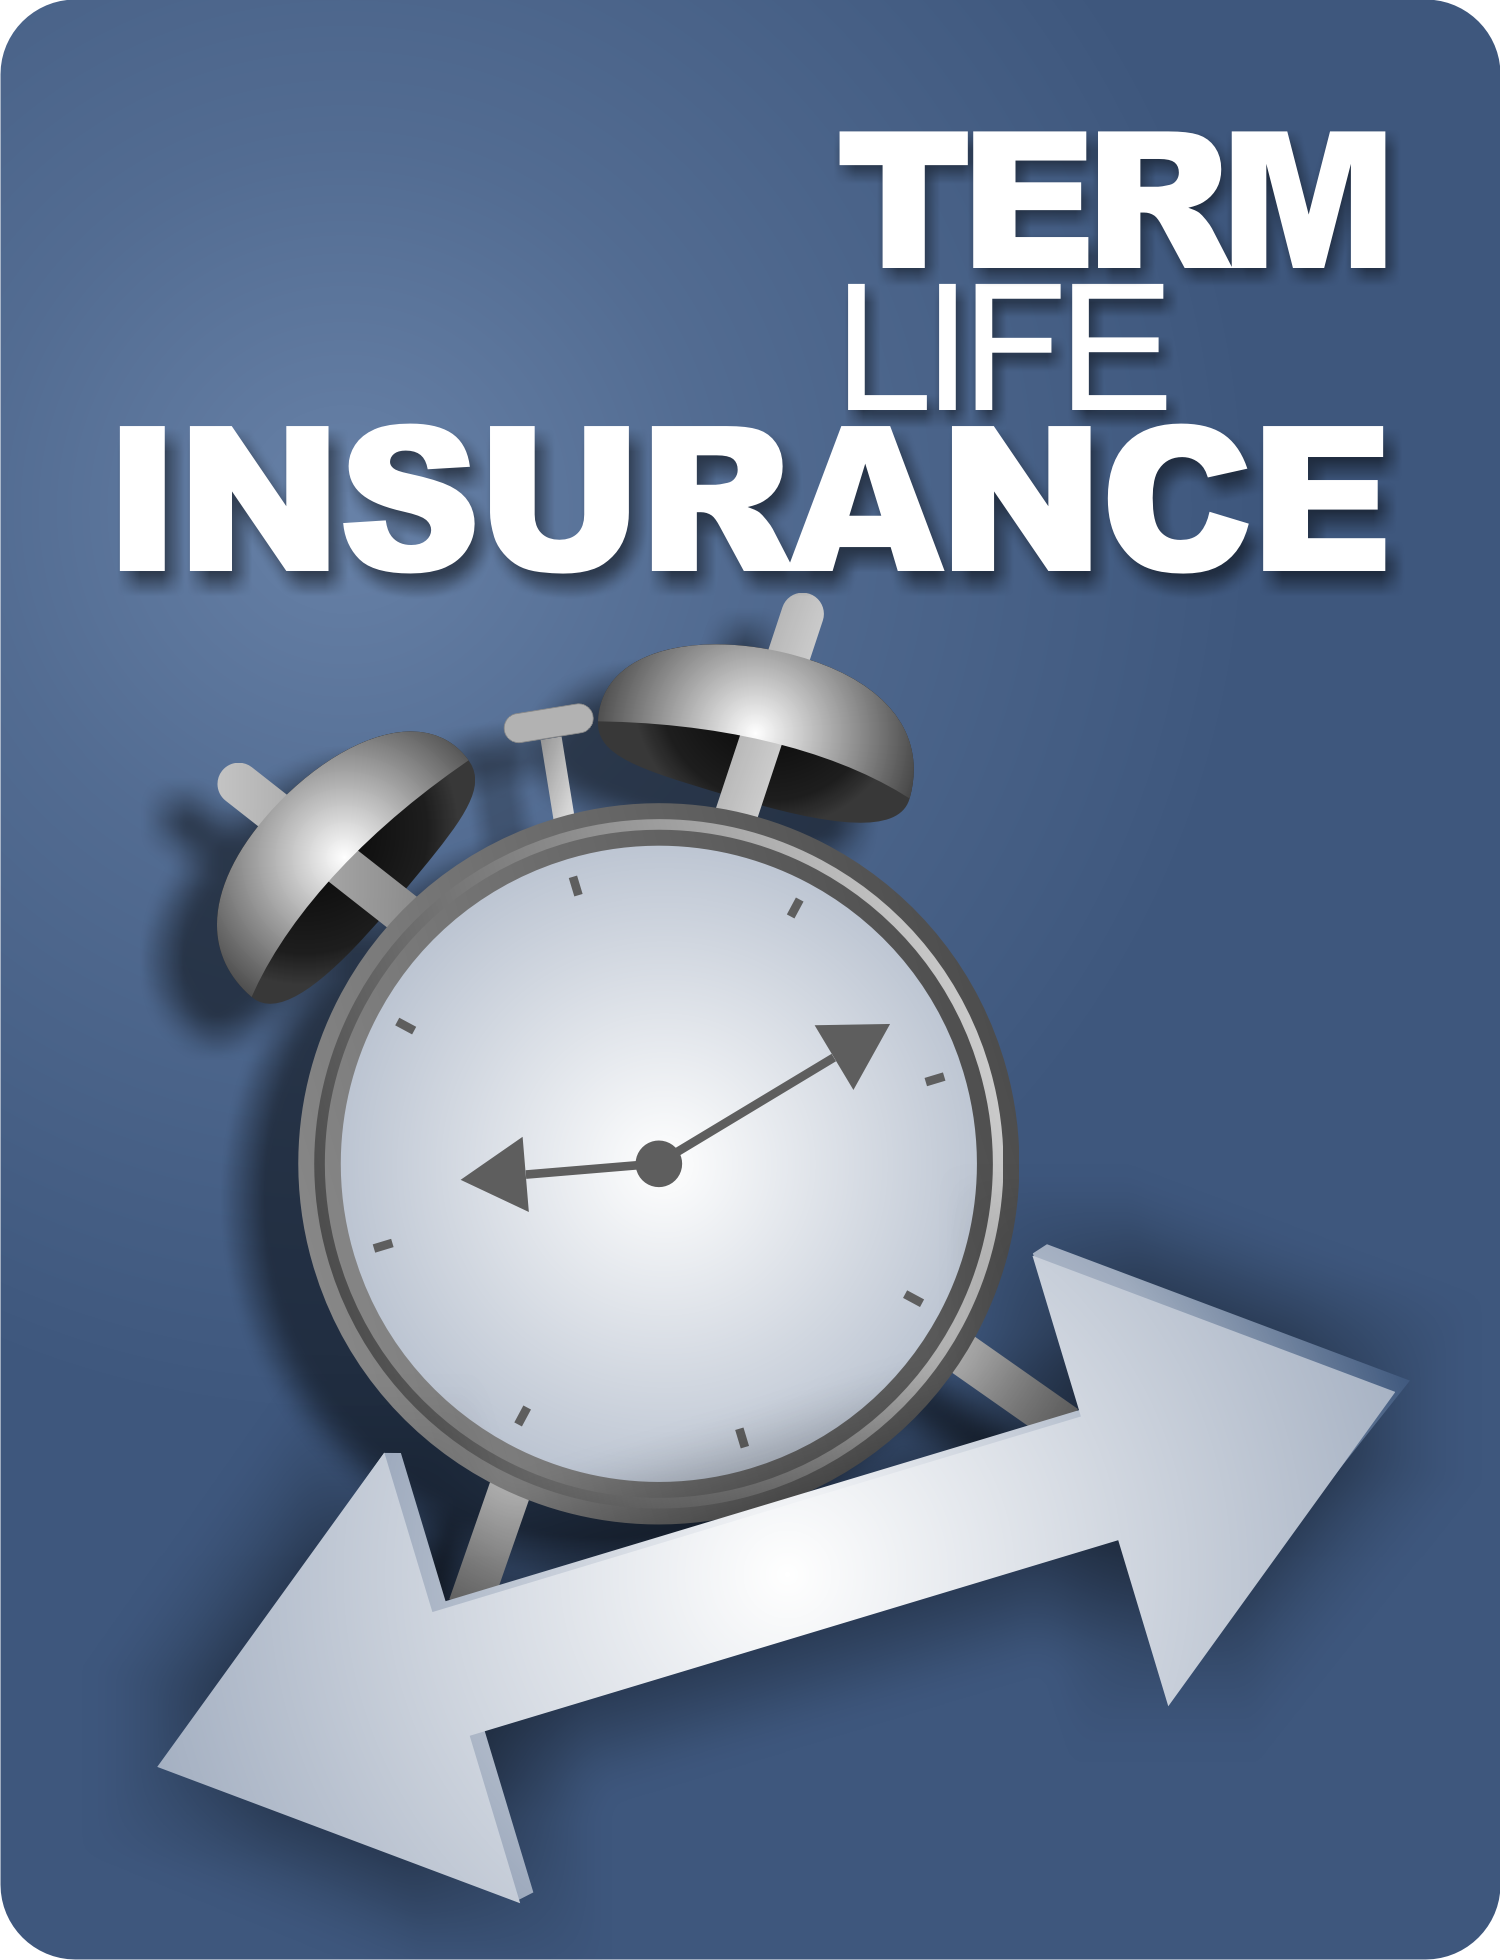 Life Quotes Life Insurance Don't Wait Until It's Too Late Protect Your Family With A Term